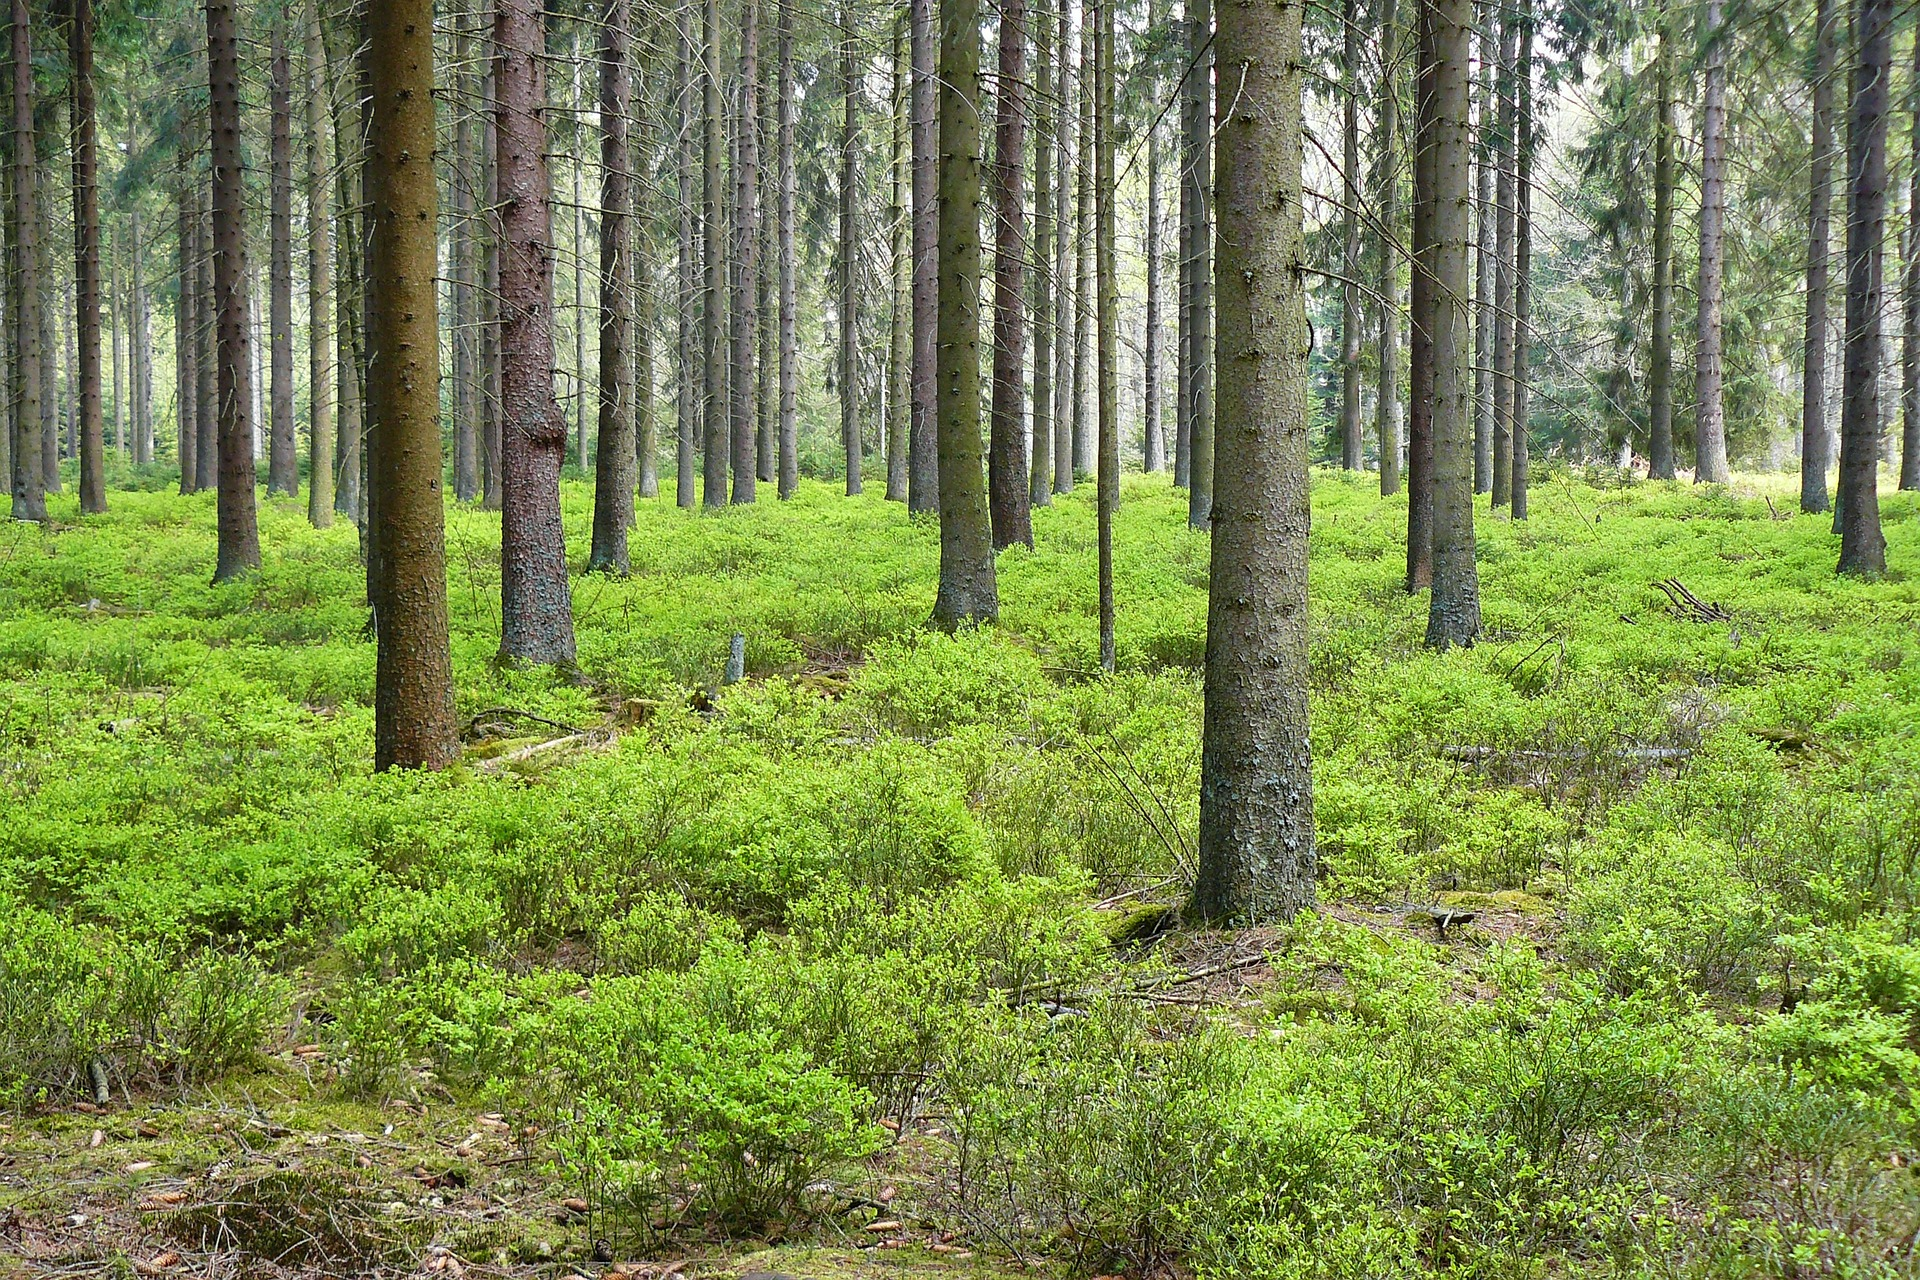 forest-348995_1920